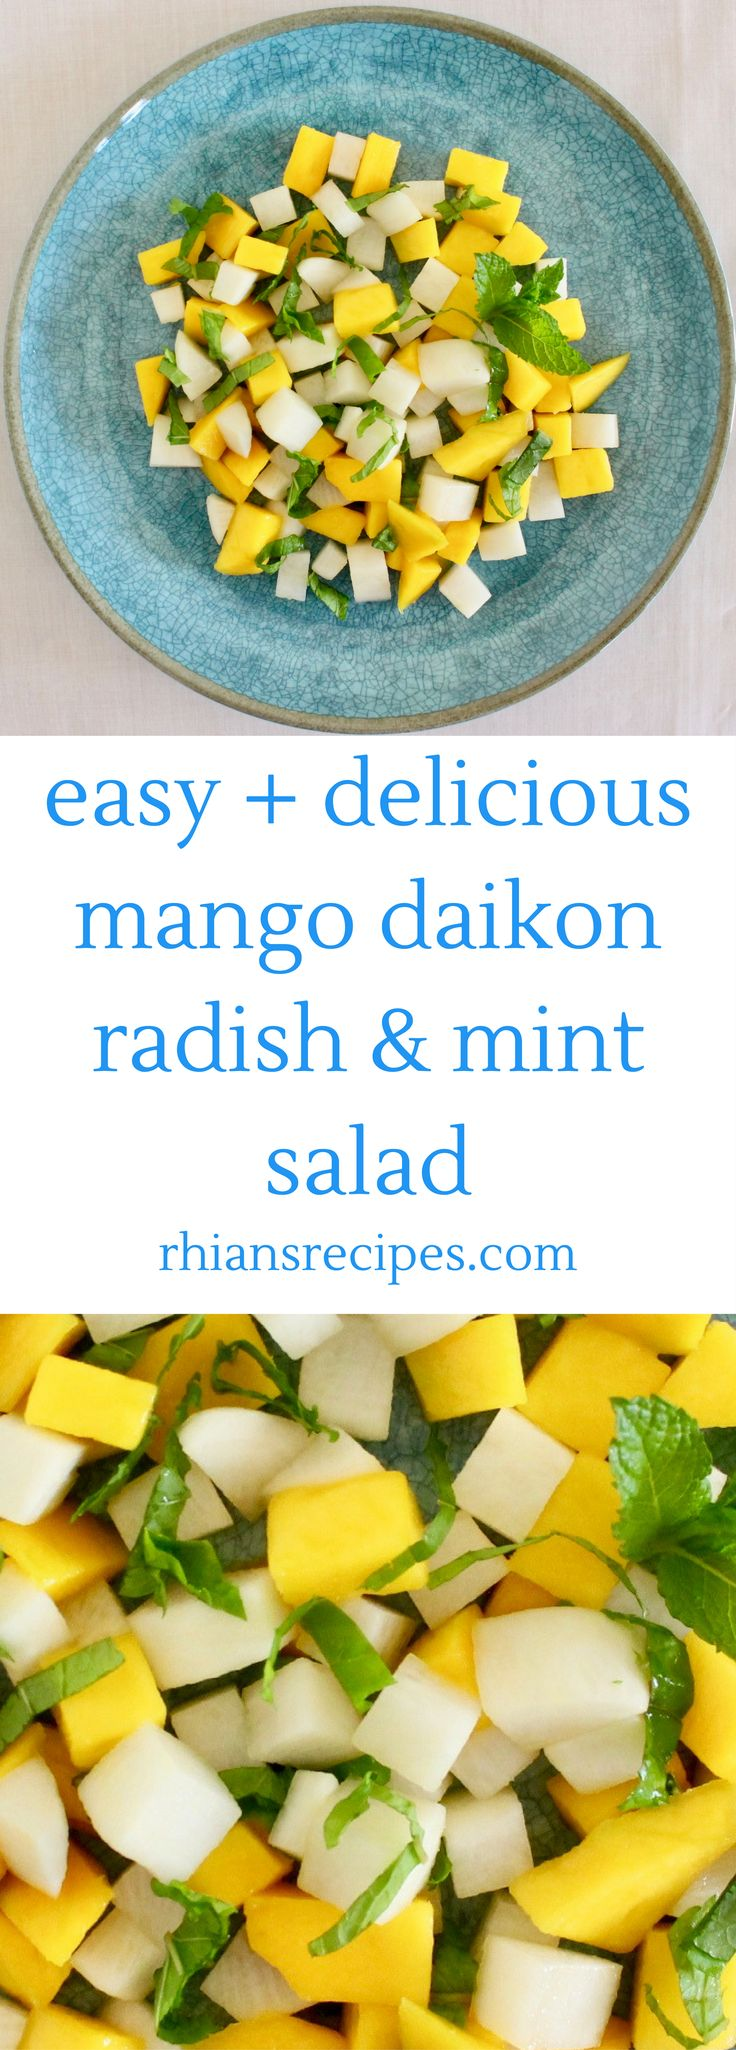 This Mango Daikon Radish Mint Salad is fresh, fruity, minty, and deceptively easy to make!